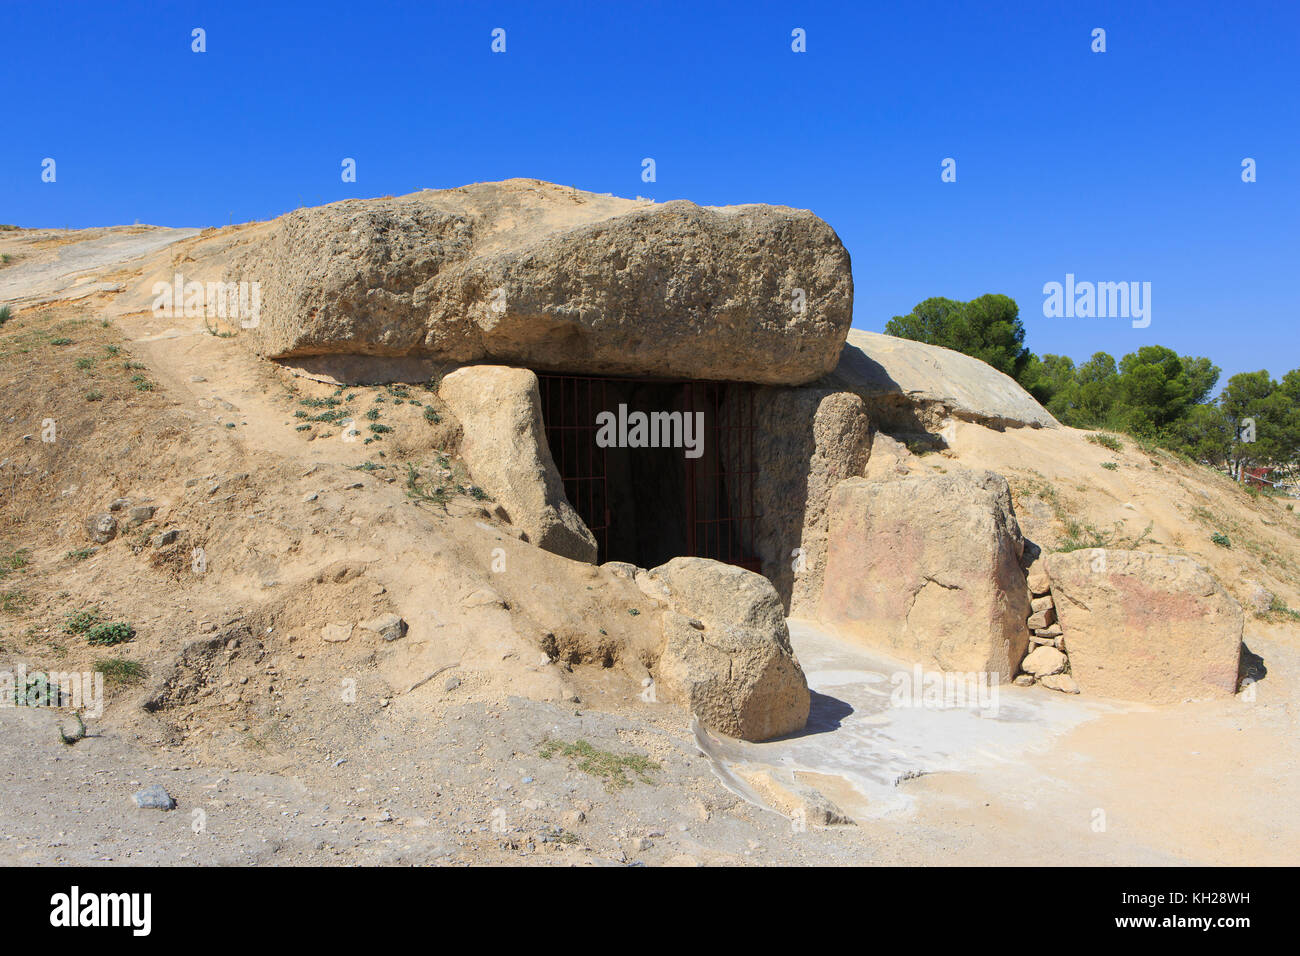 Entrance to the Dolmen of Menga (Dolmen de Menga), dating from the 3rd millennium BCE in Antequera, Spain - Stock Image